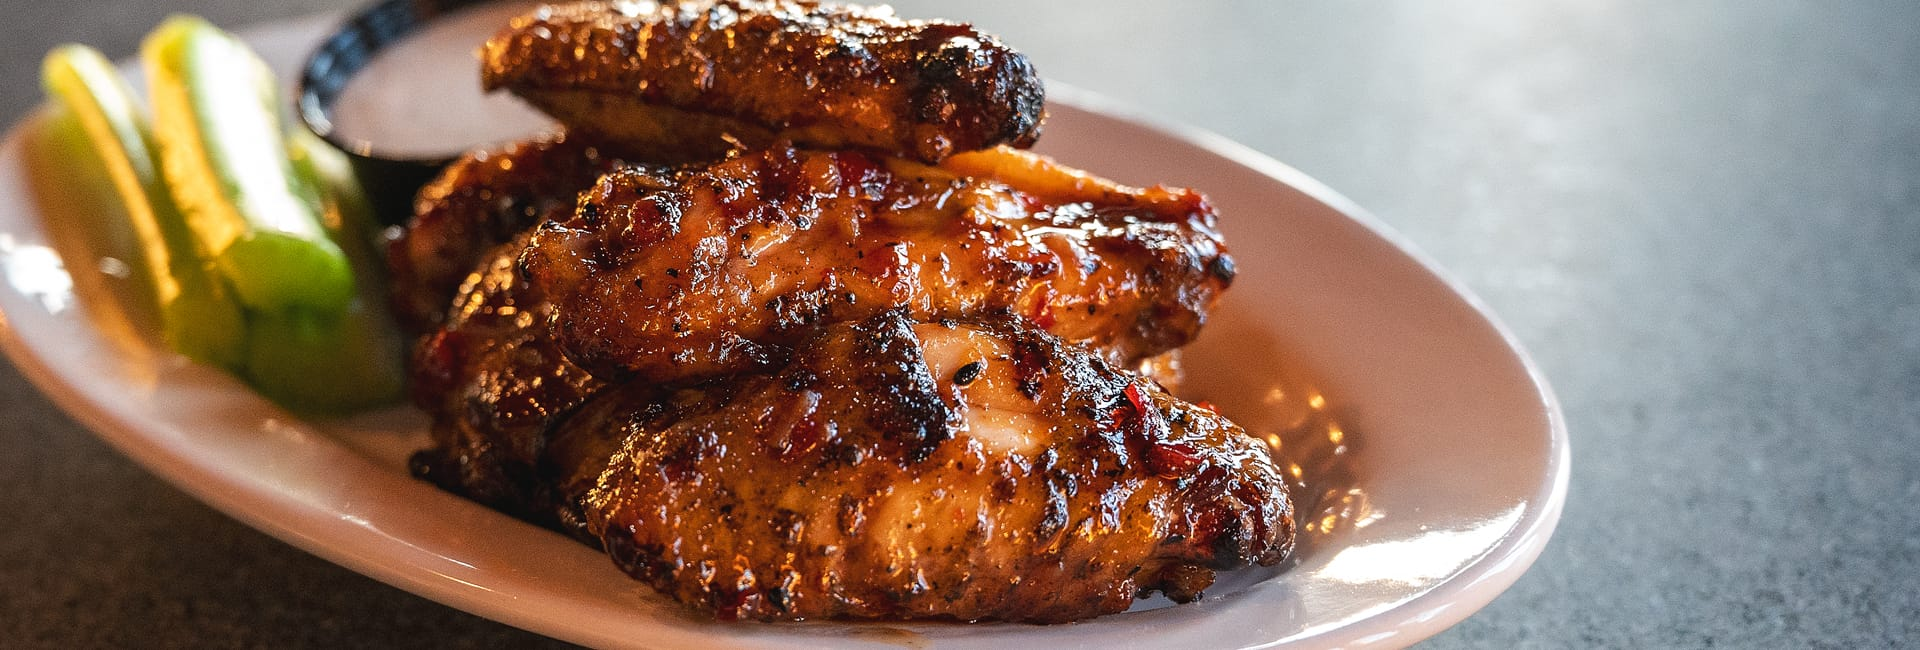 Clyde Iron Works Chicken Wings